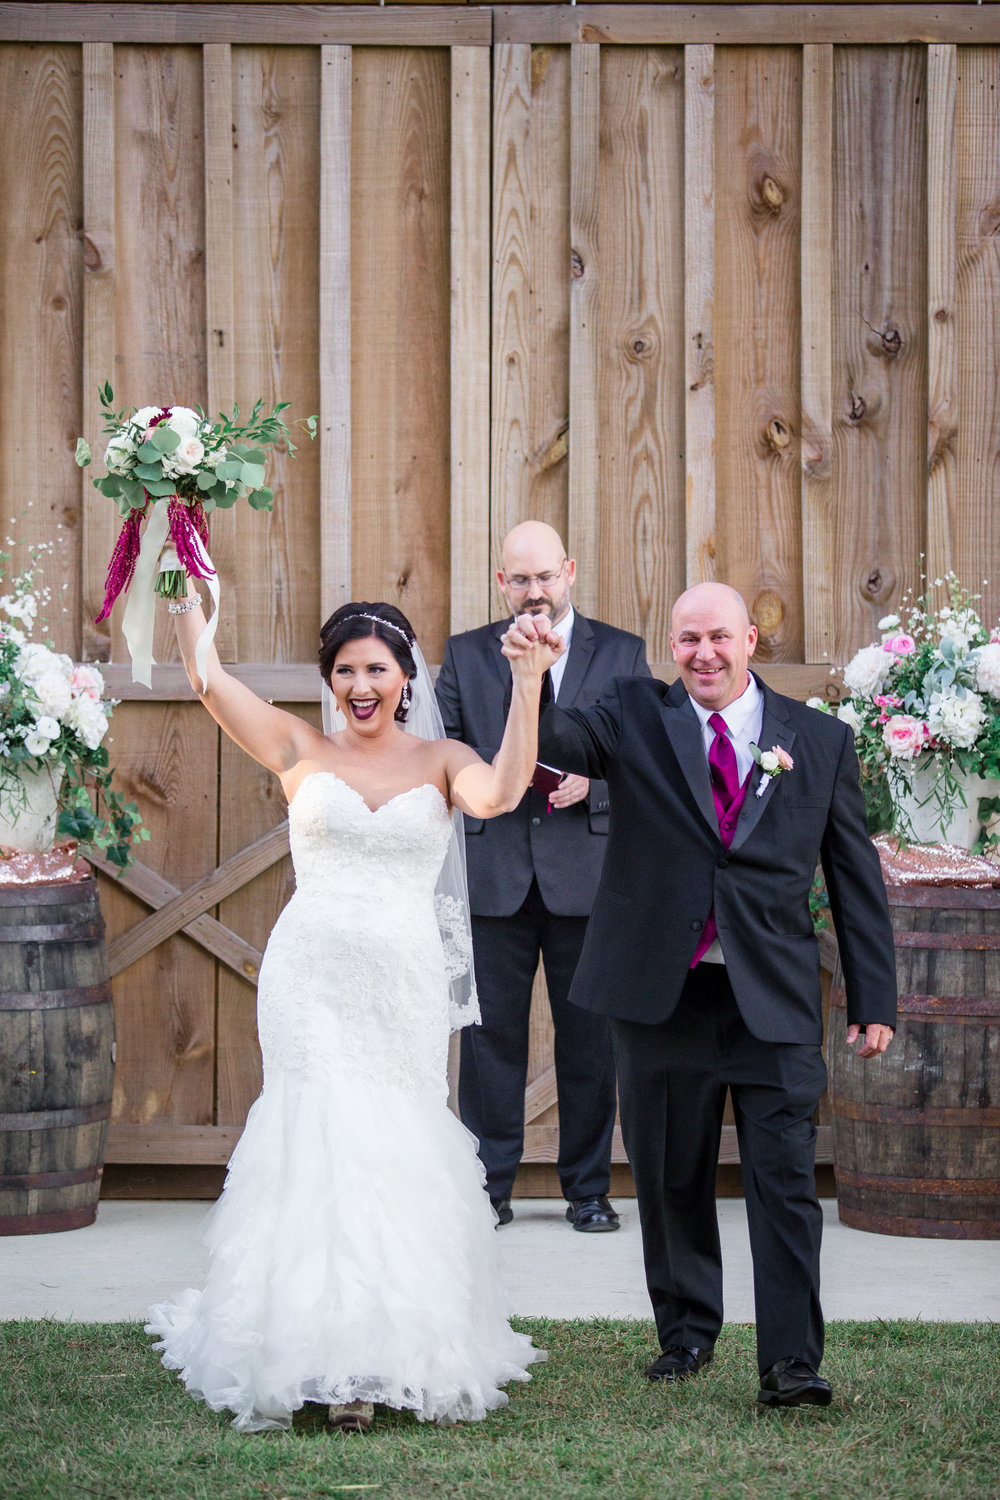 check out the blog: - Courtney + Clint's wedding